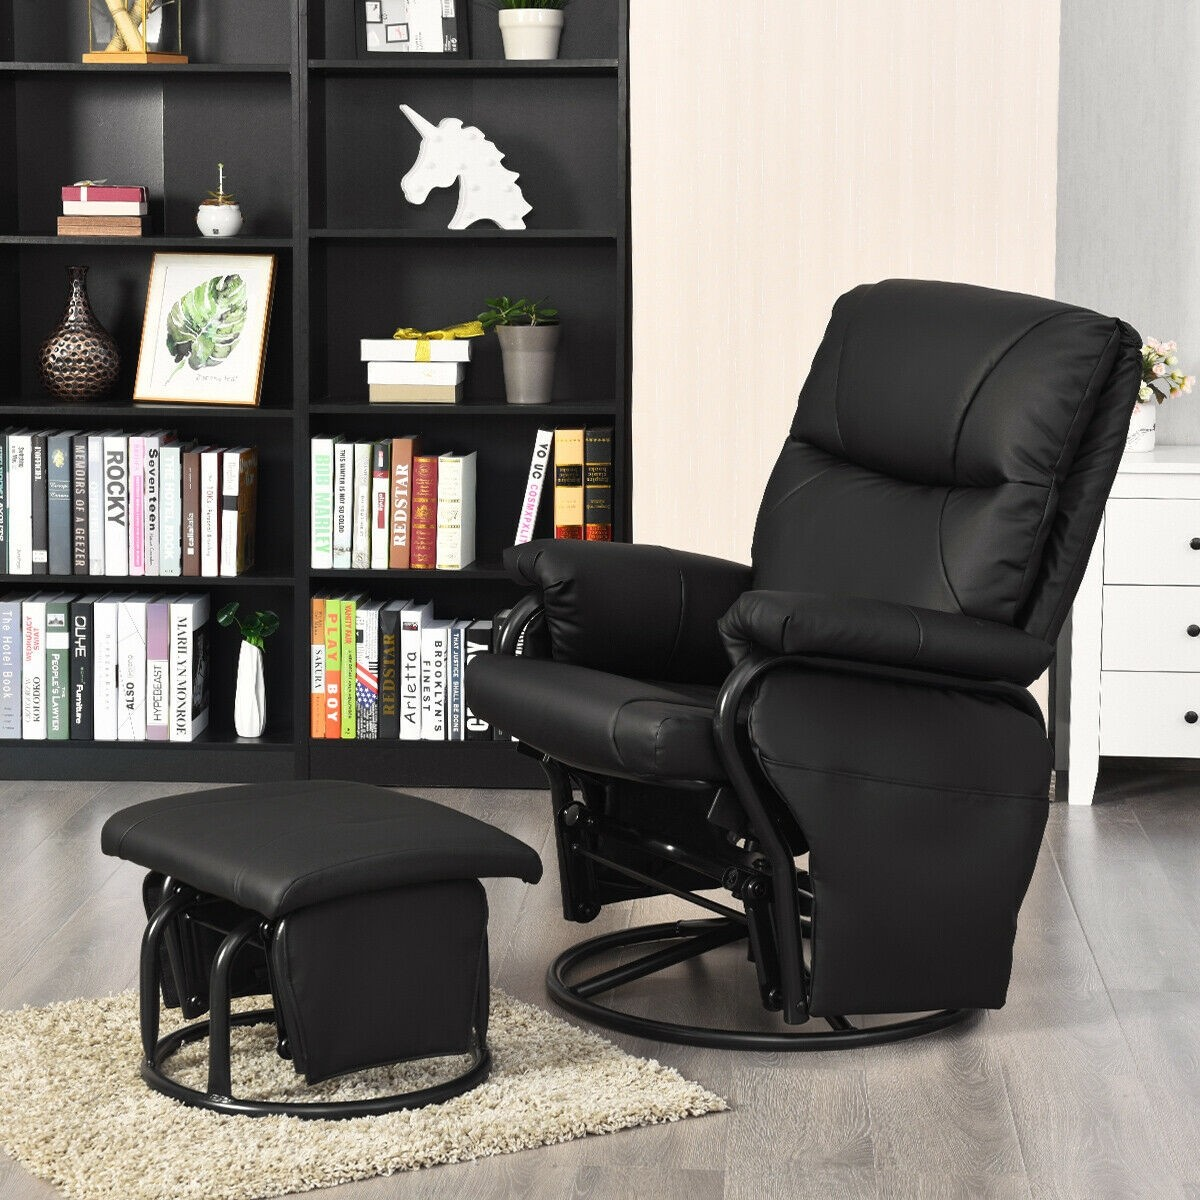 Details About Home Glider Swivel Reclining Pu Leather Computer Recliner Chairs With Ottoman Us